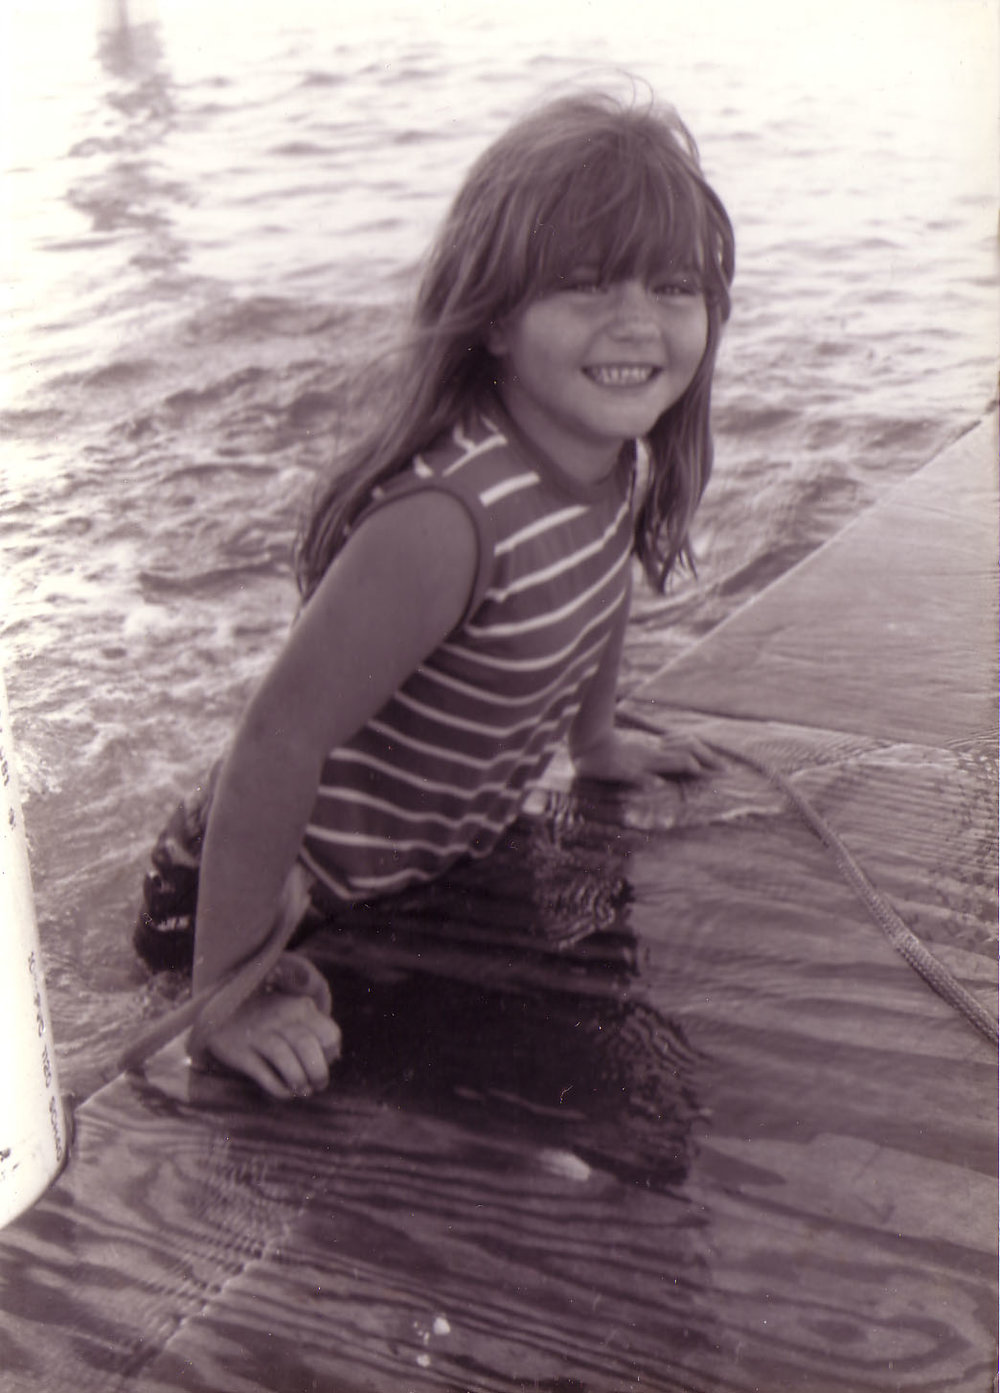 The author at her family's stilt house, circa 1980.